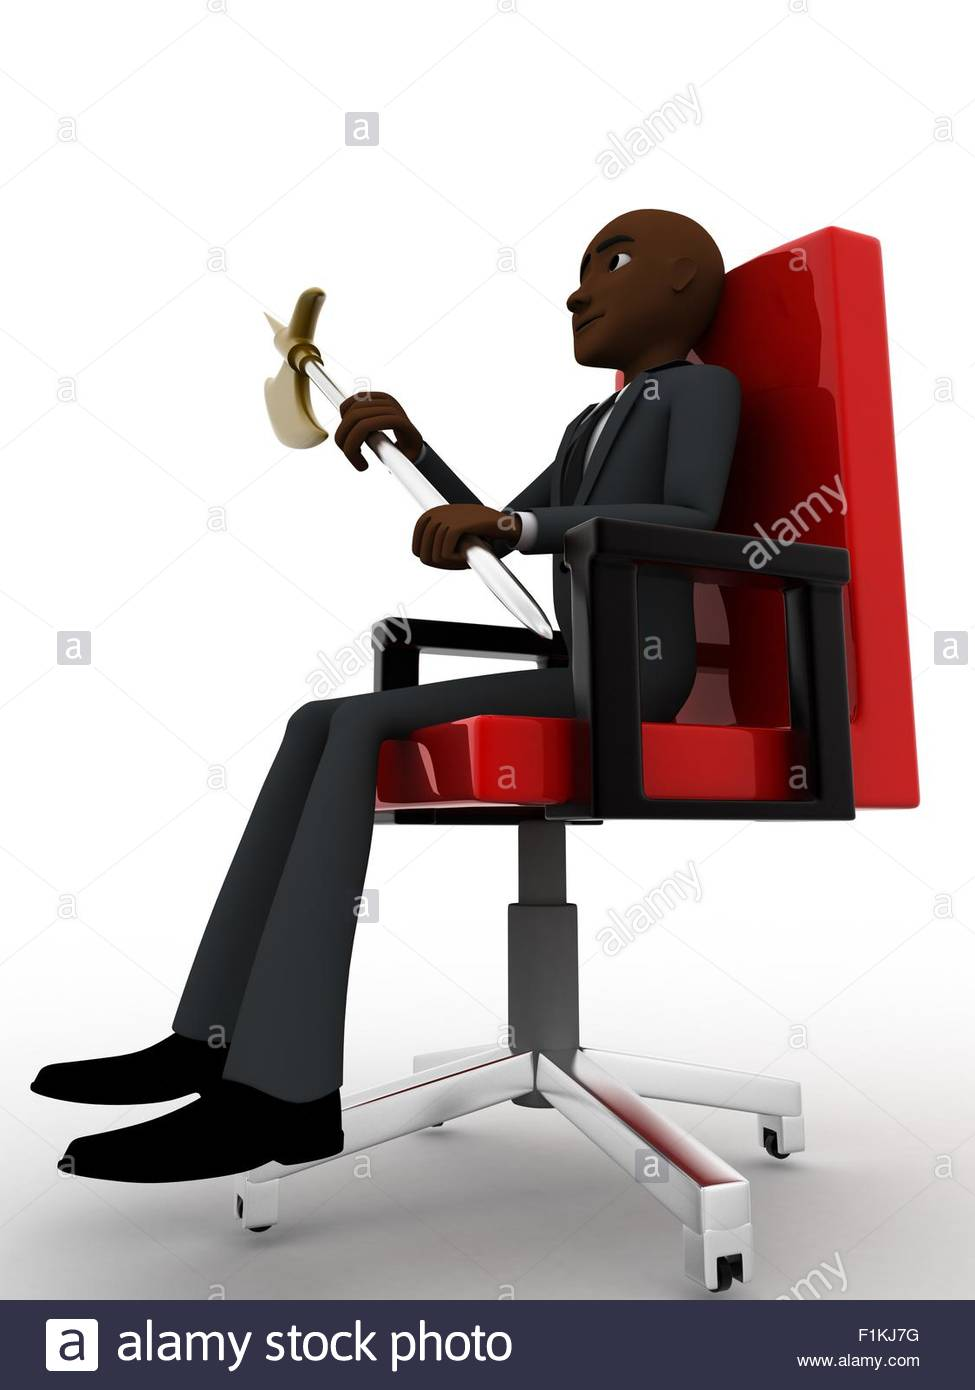 Man sitting in chair side - 3d Man Sitting On Red Chair With Axe Concept On White Background Side Angle View